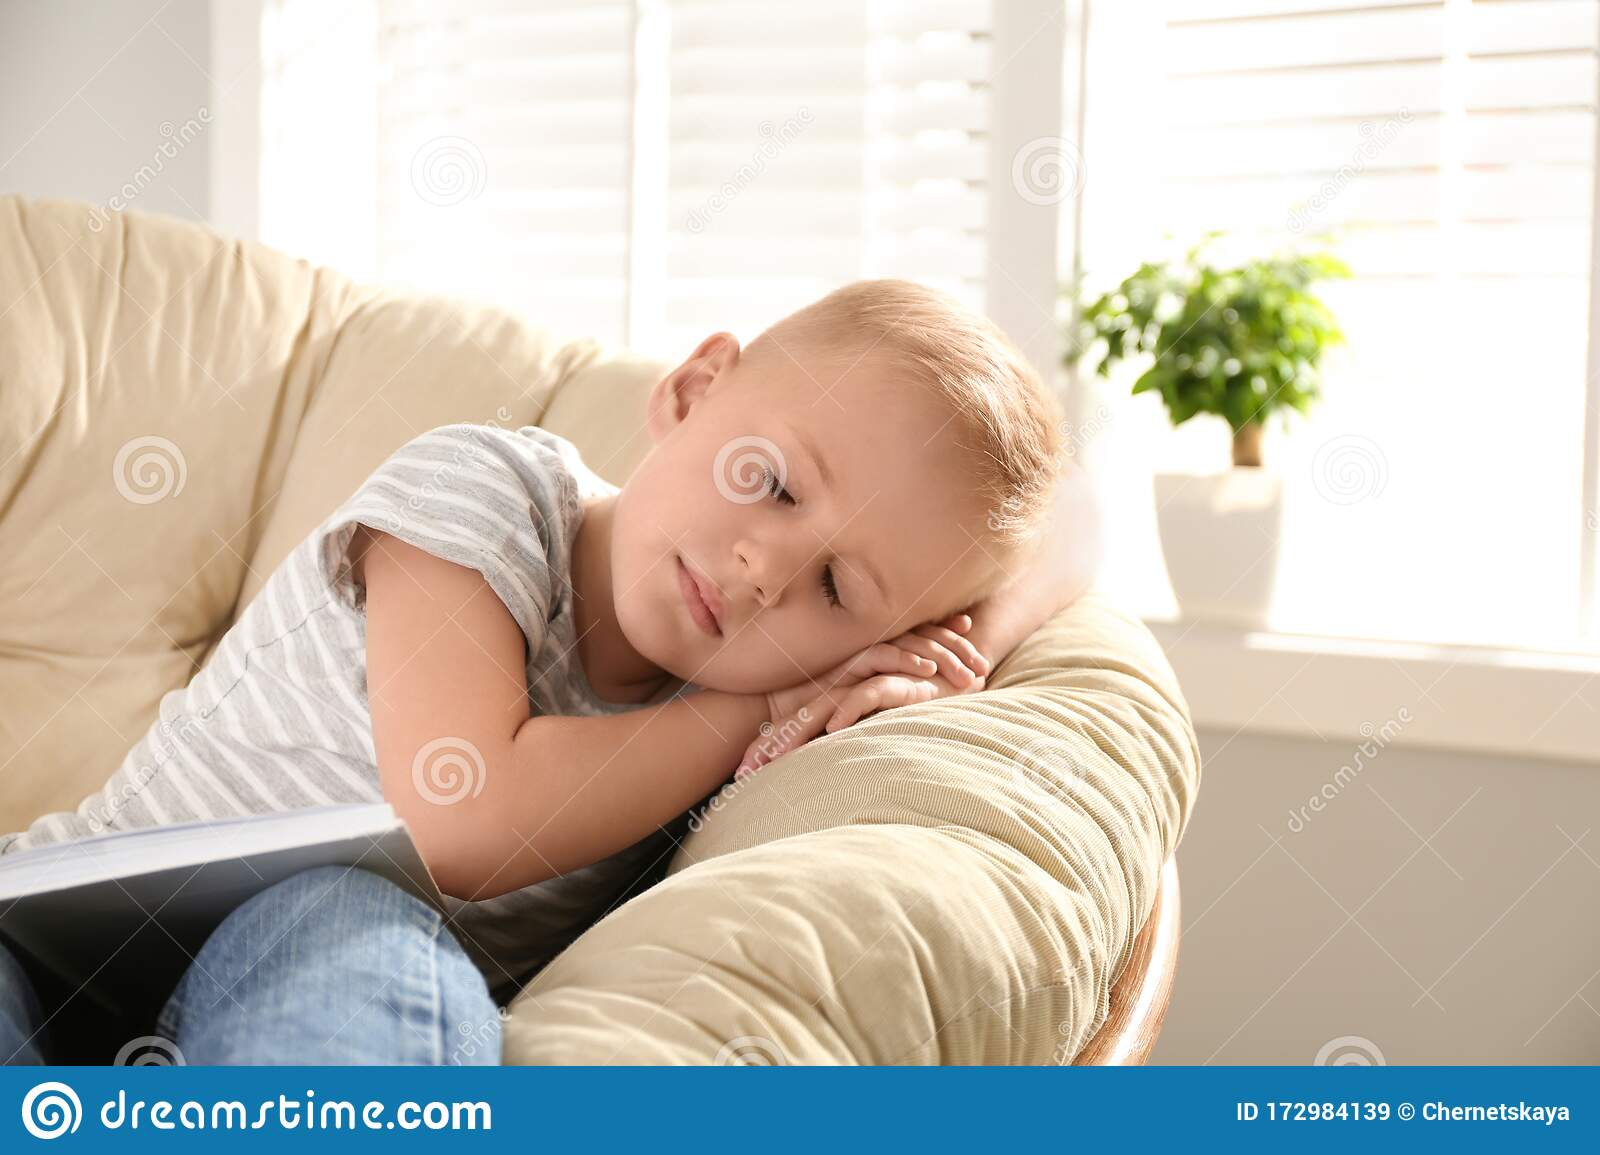 Cute Little Boy Sleeping In Papasan Chair Stock Image Image Of Background Jeans 172984139